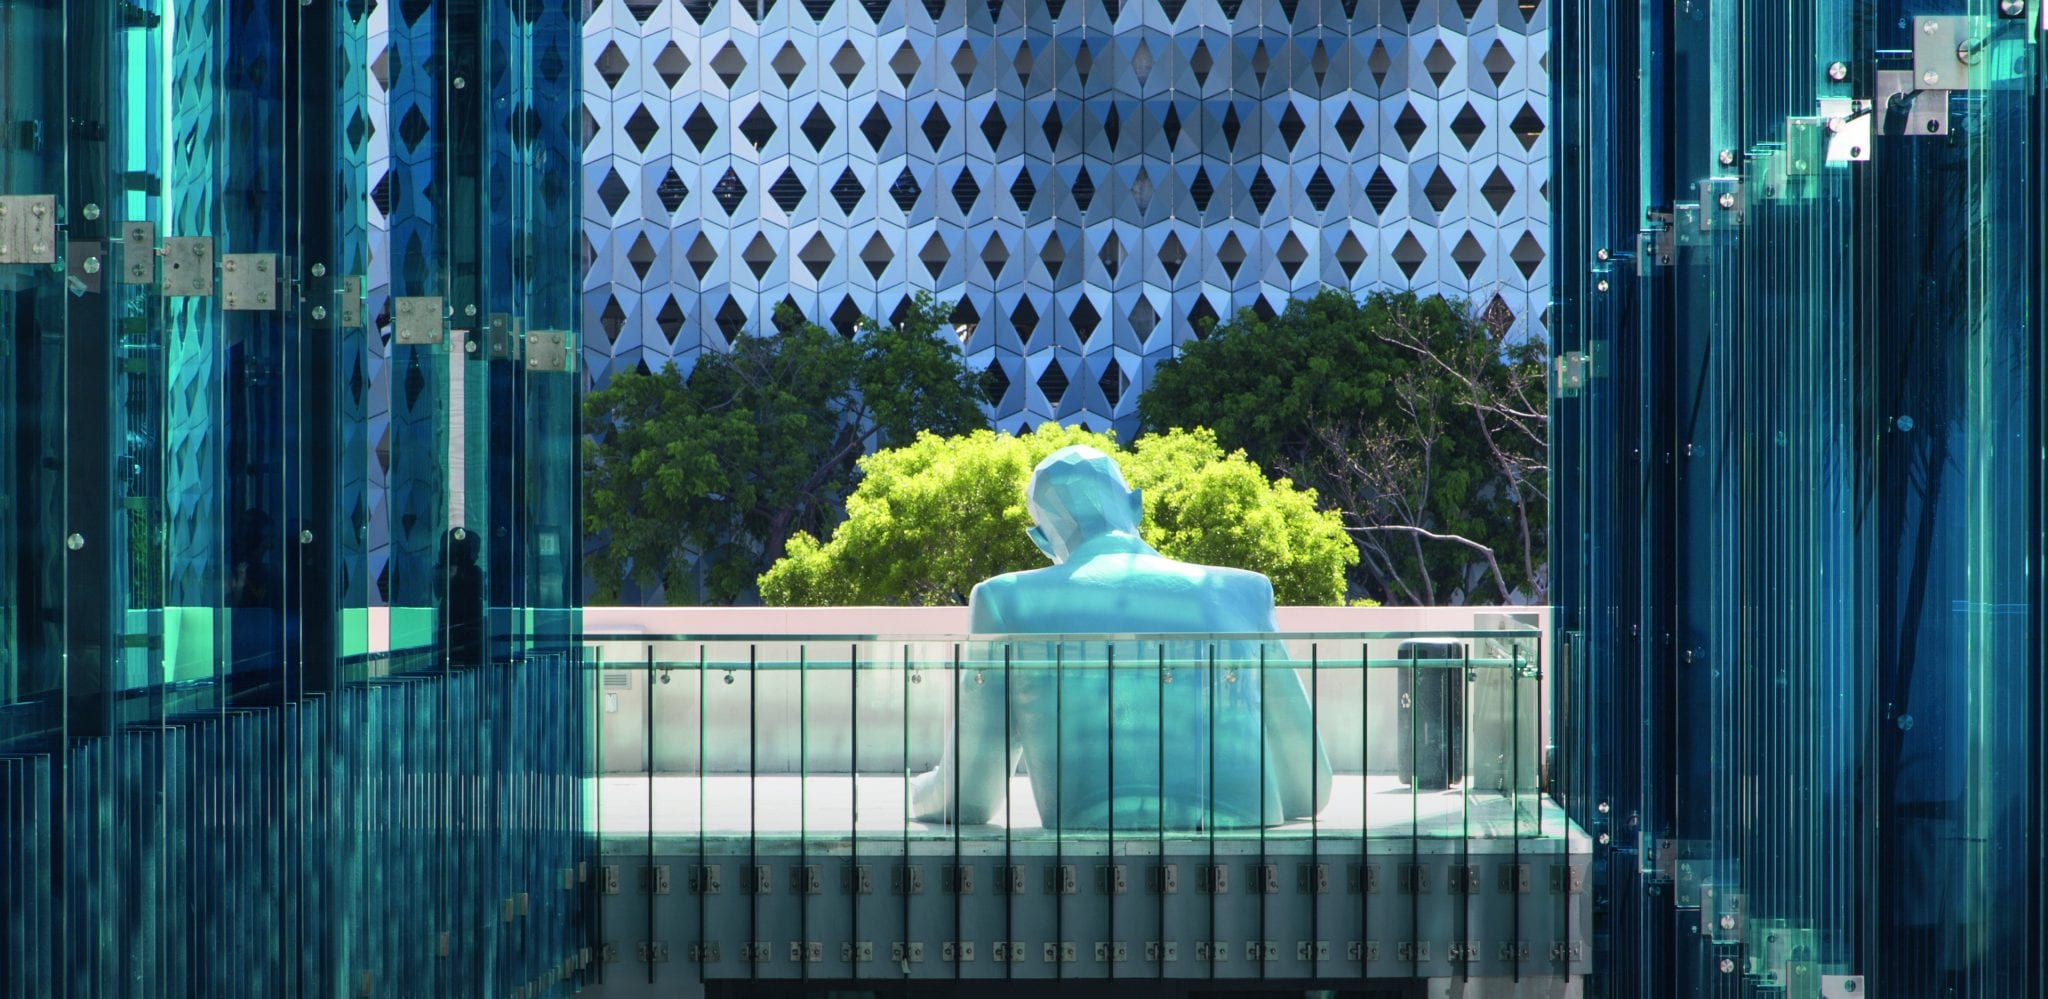 What to see in The Design District in Miami